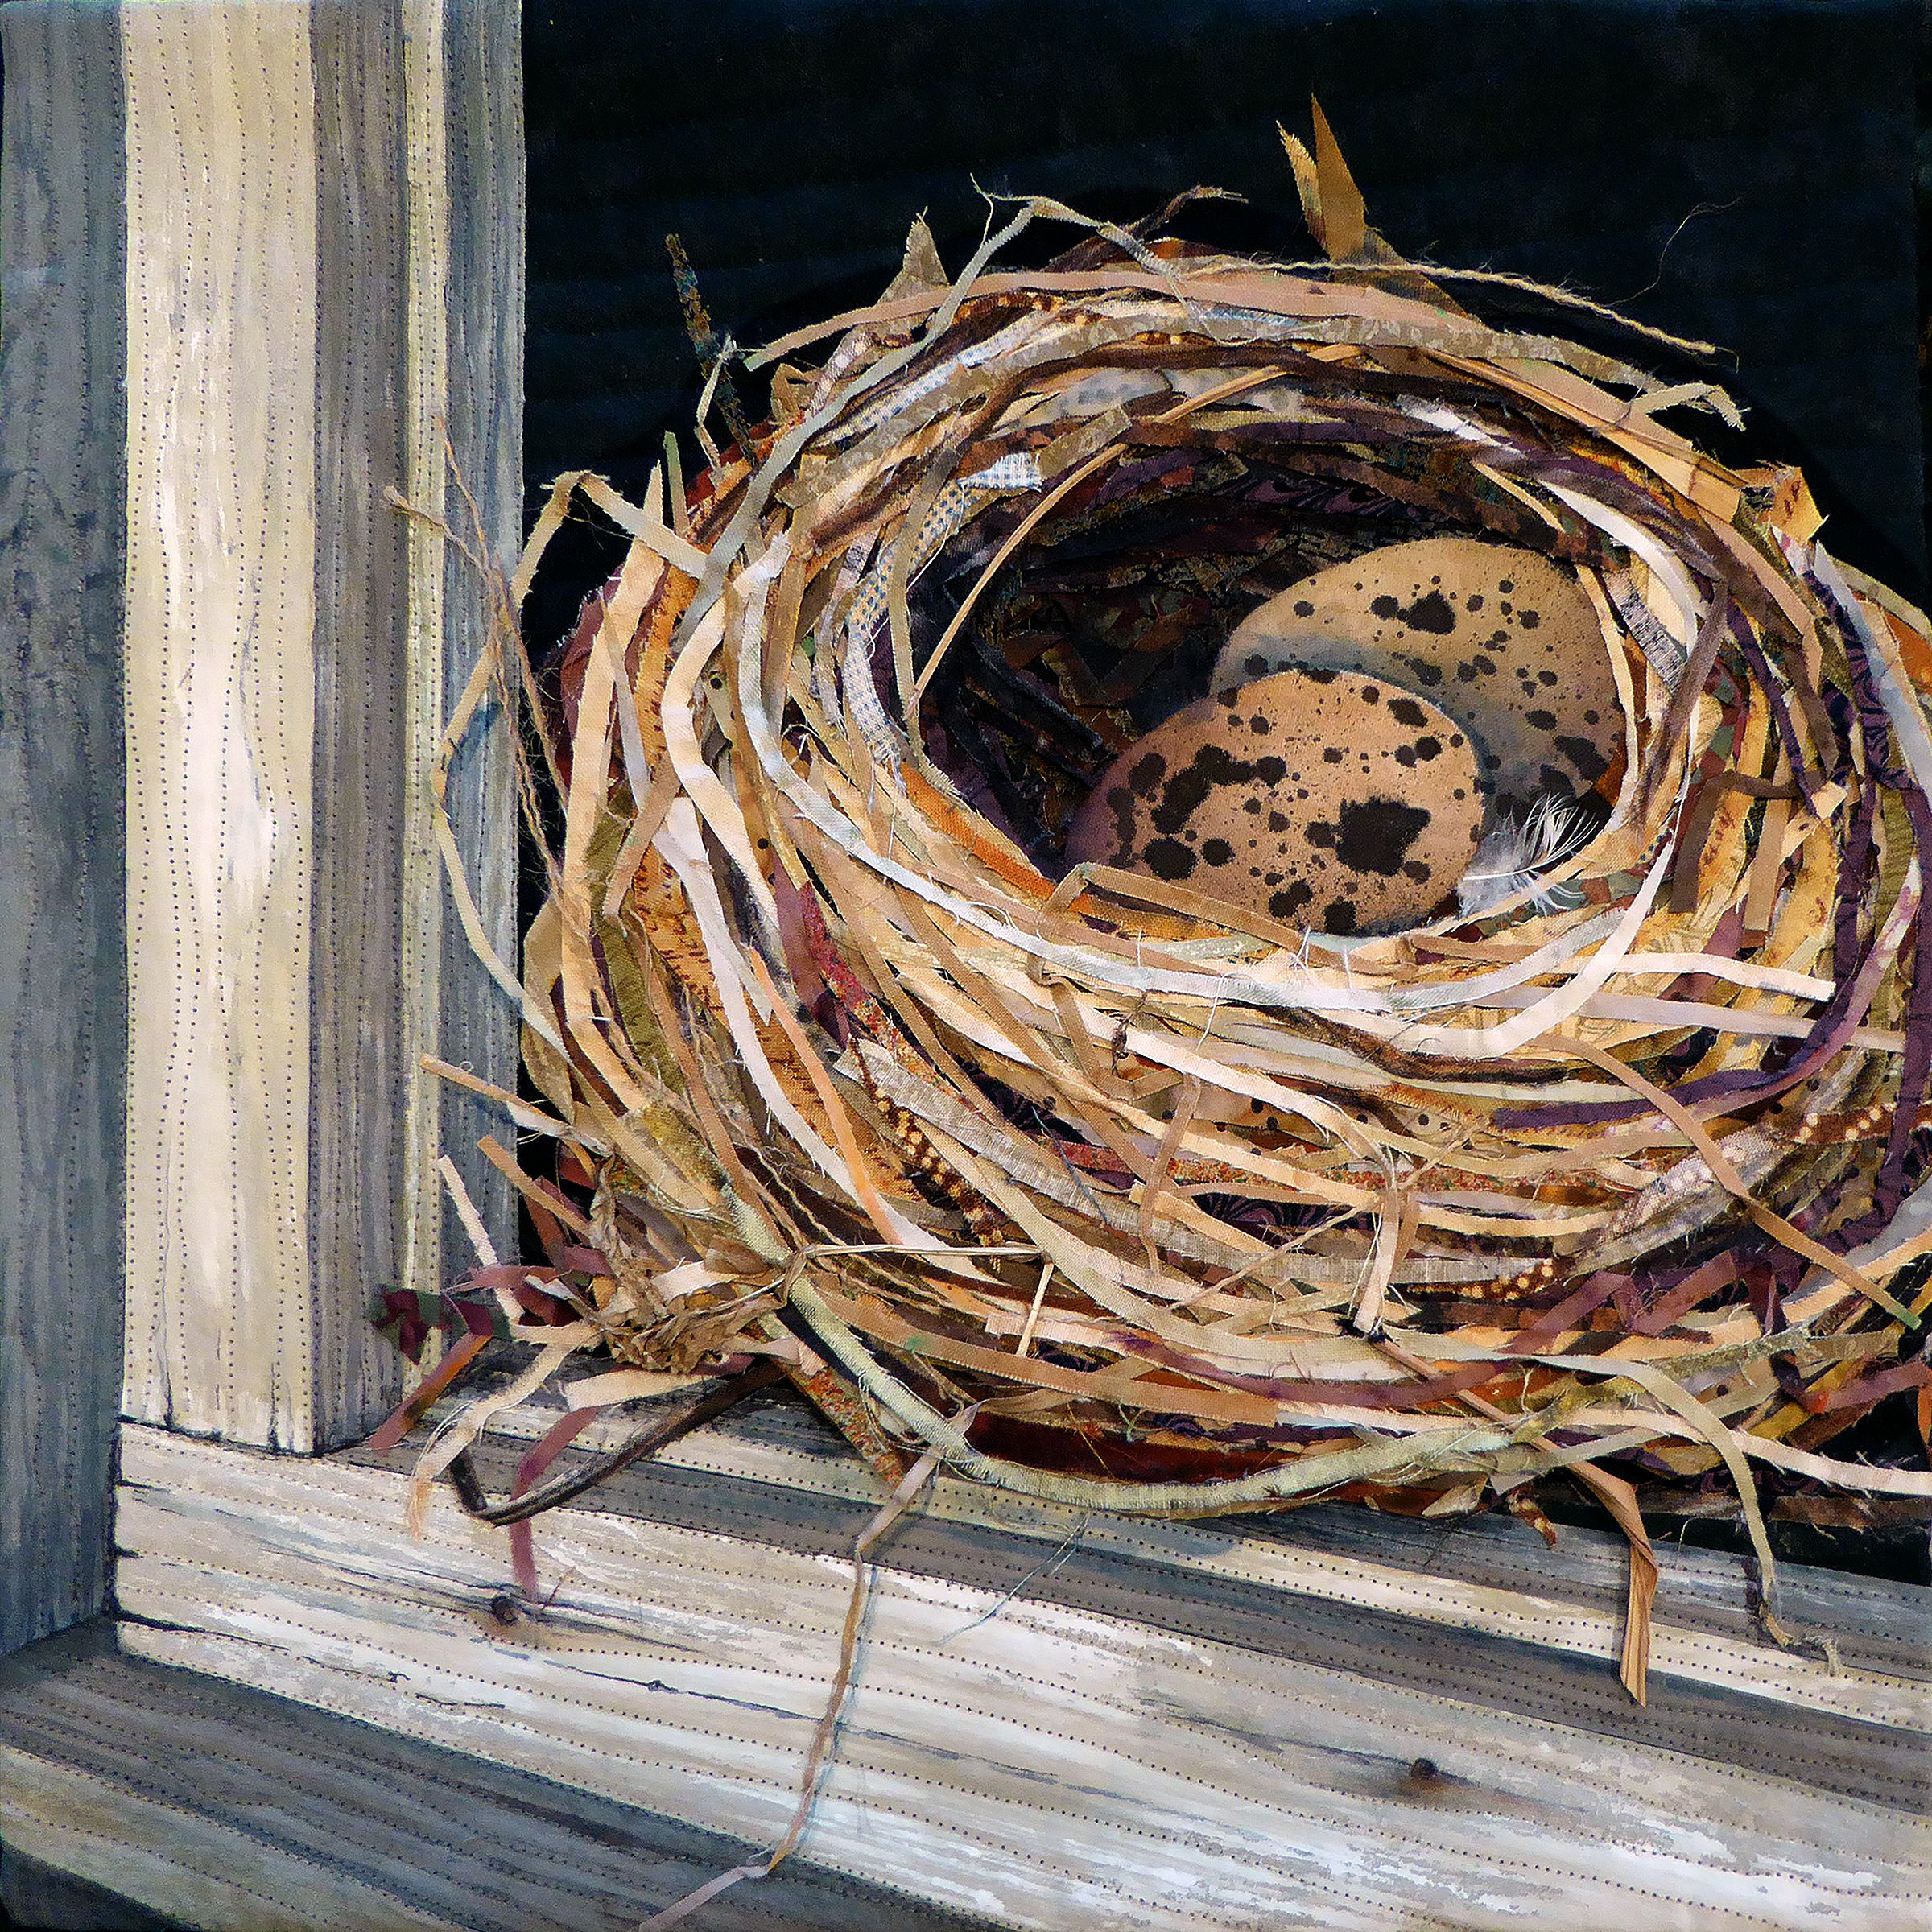 Nest Mini Art Quilt By Nancy Messier Landscape Quilts Art Quilts Animal Quilts